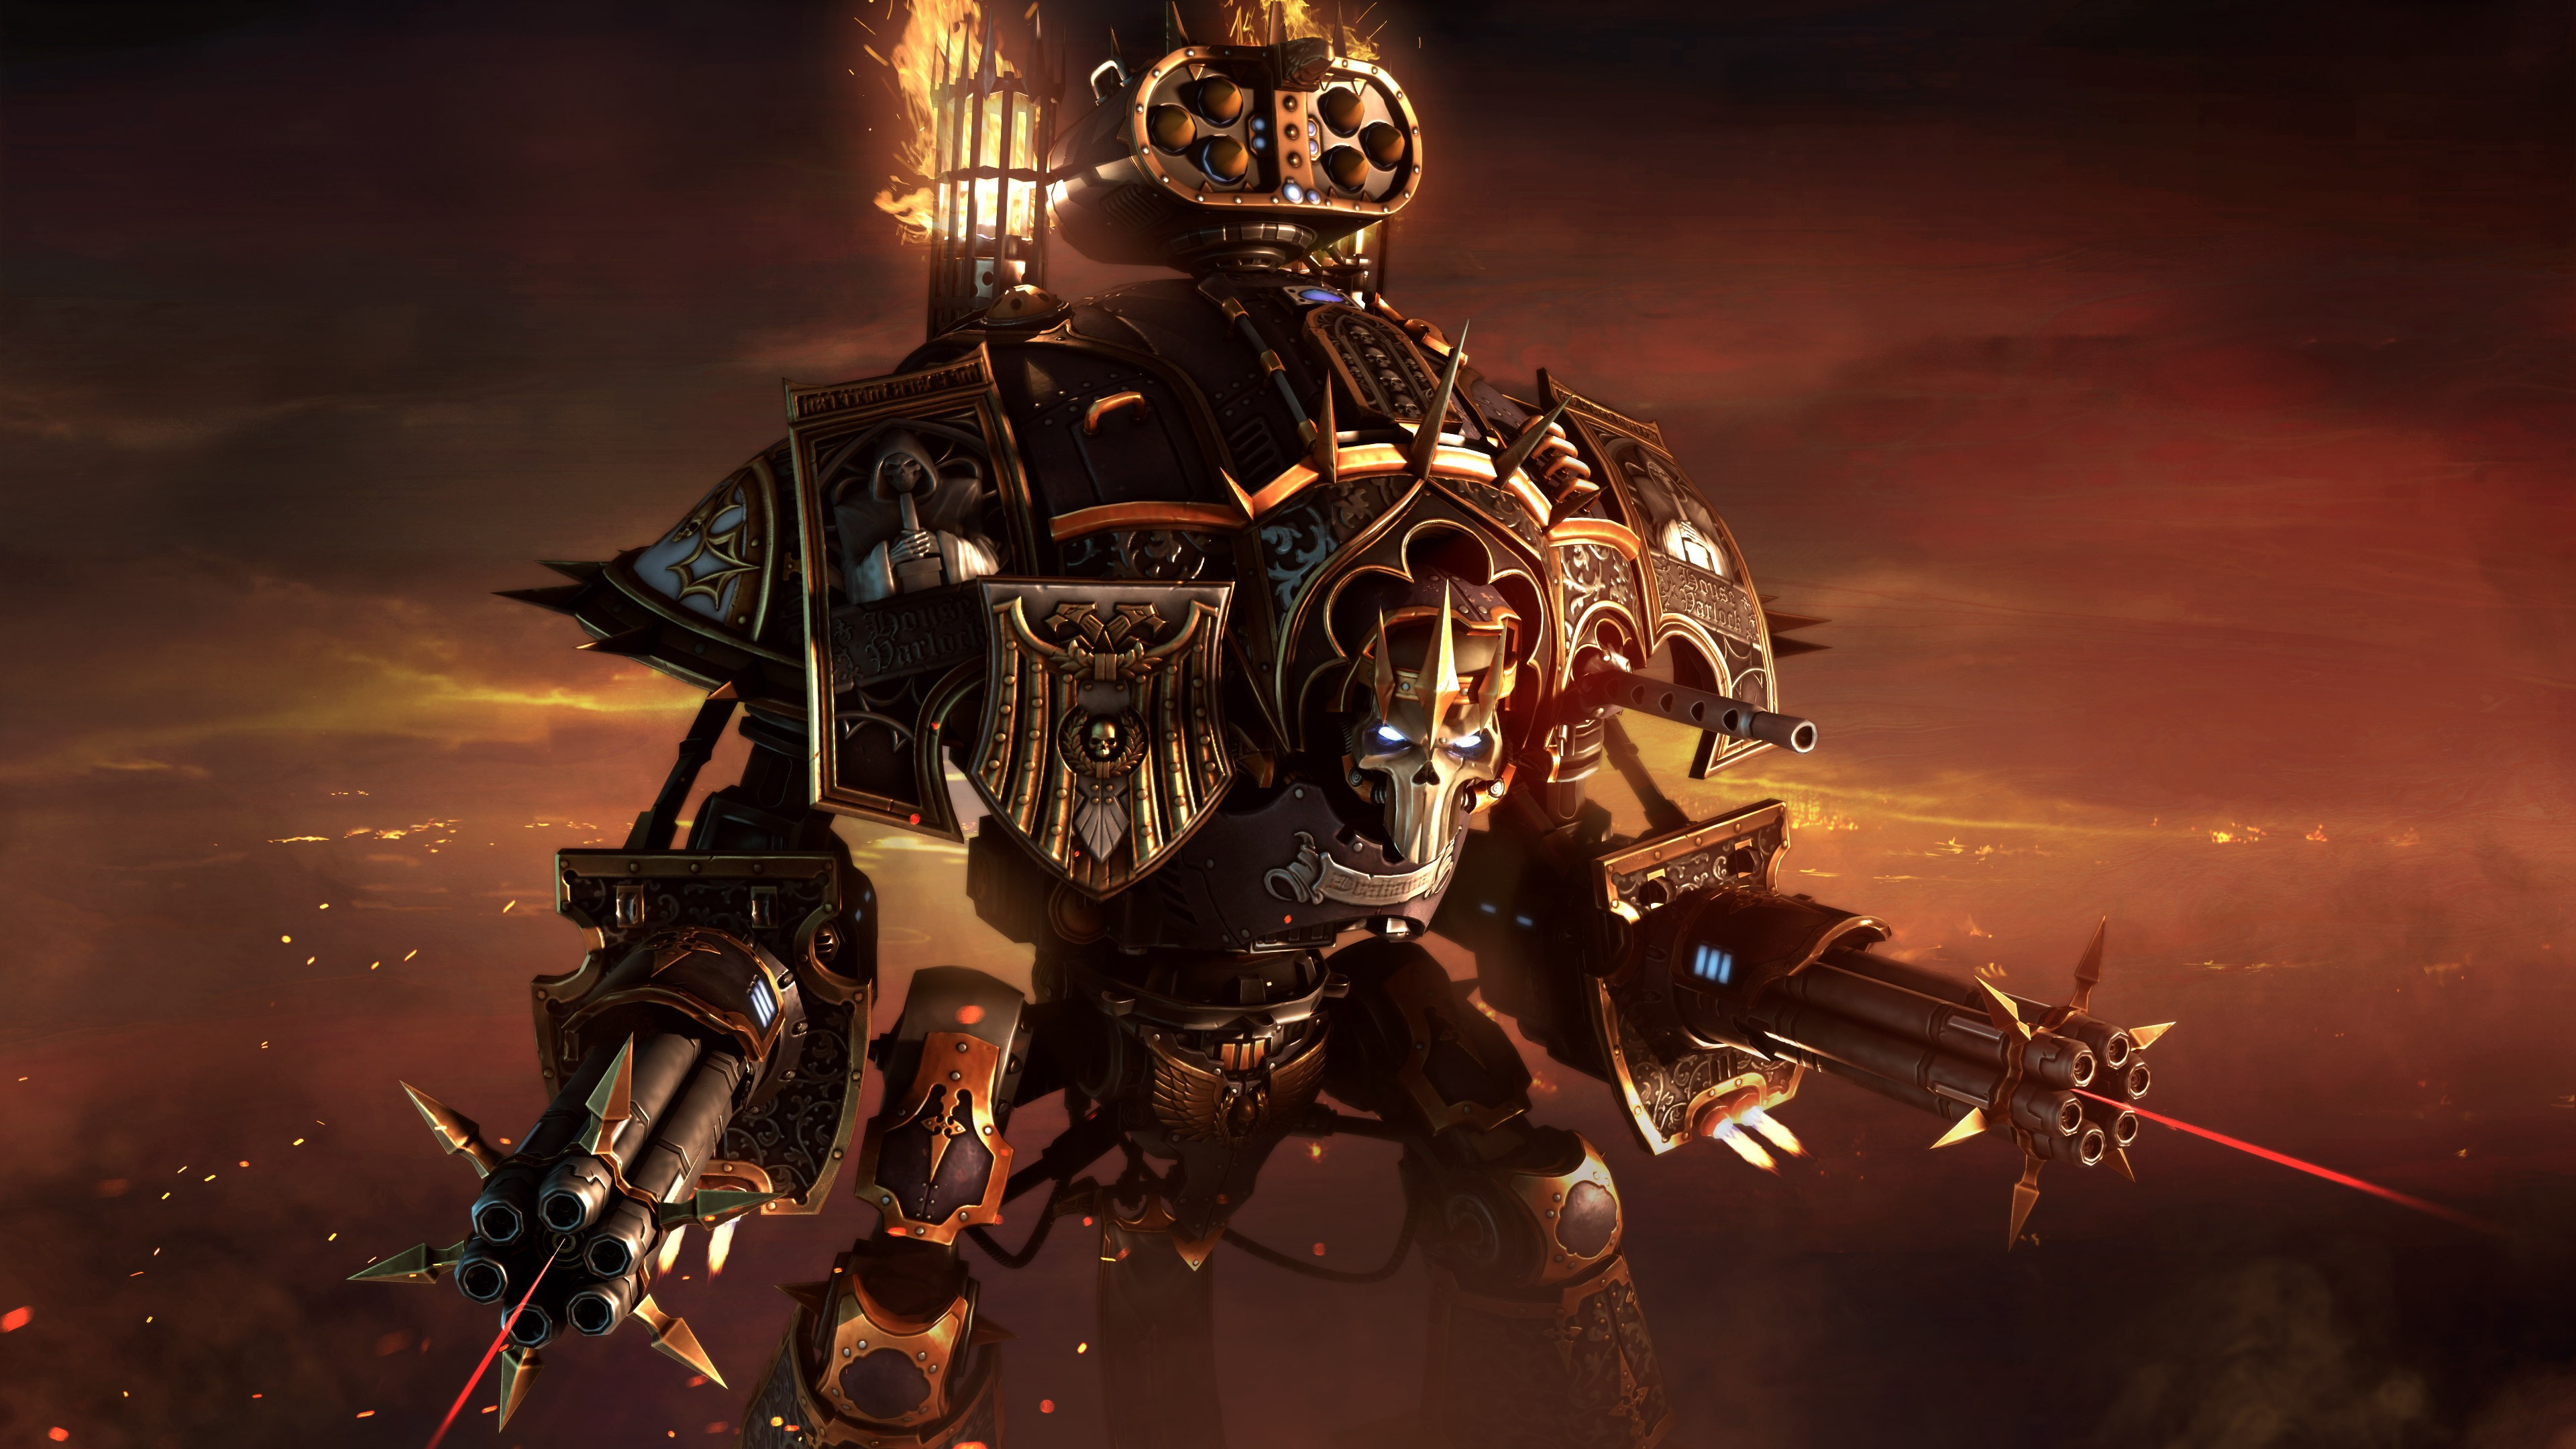 Warhammer 40K Backgrounds, Pictures, Images